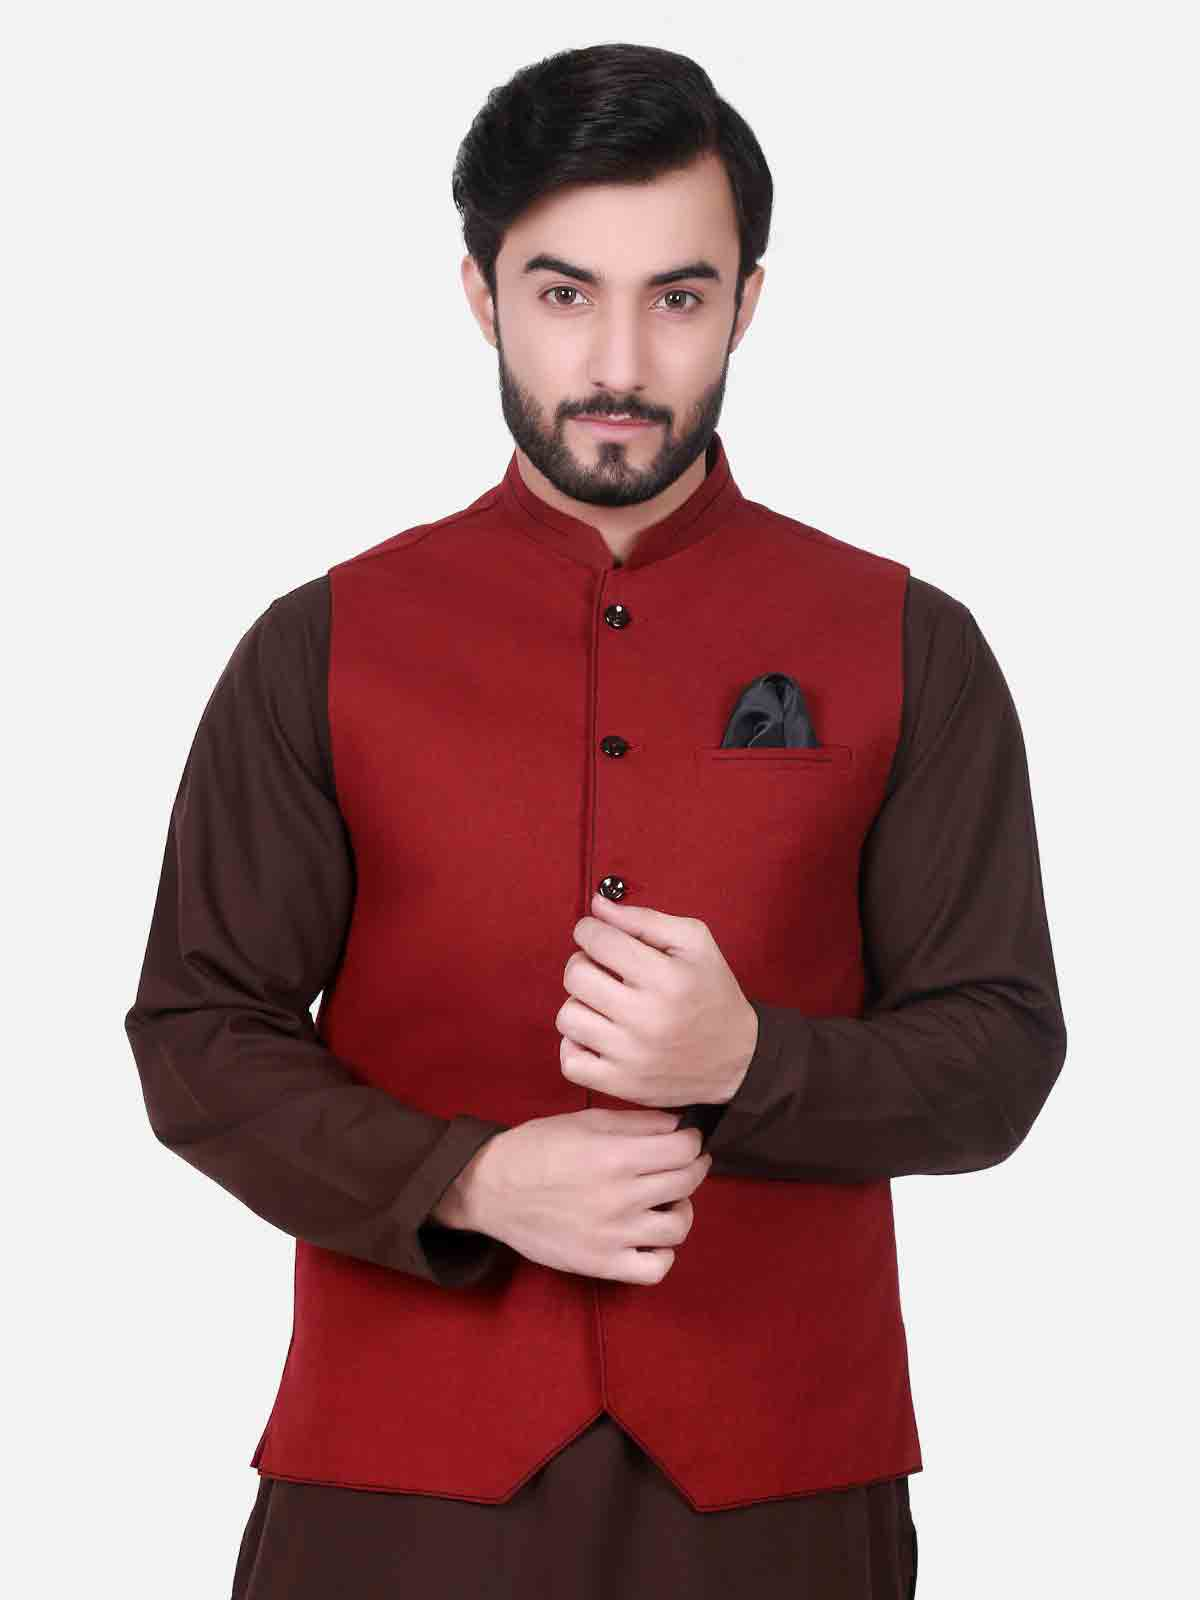 Red waistcoat designs 2017 with brown kurta for boys in Pakistan